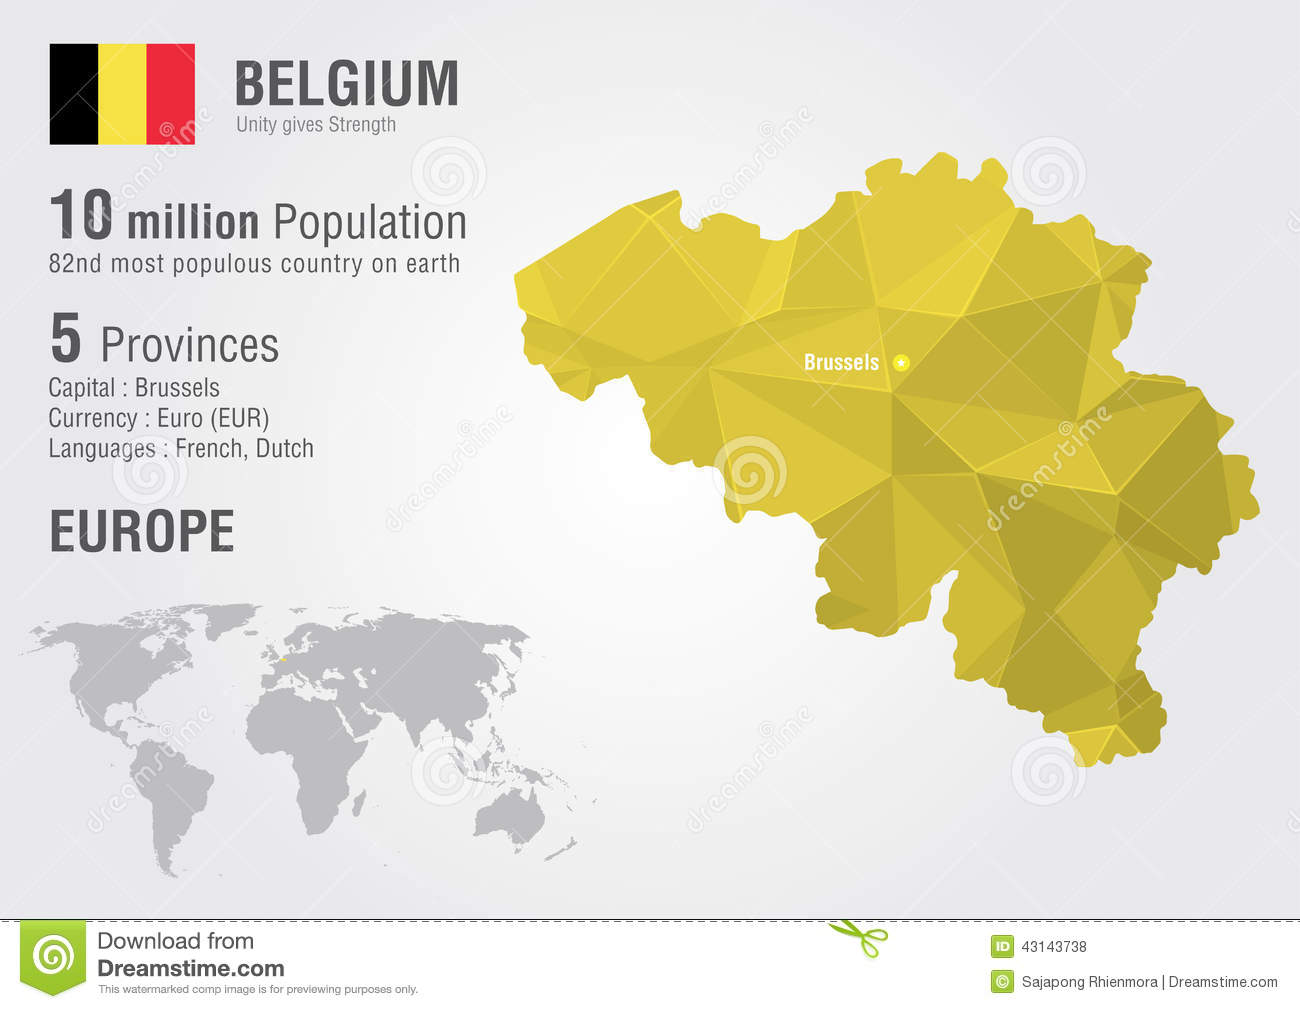 Maps Update 20001193 Belgium World Map Belgium location on the – Belgium on a World Map